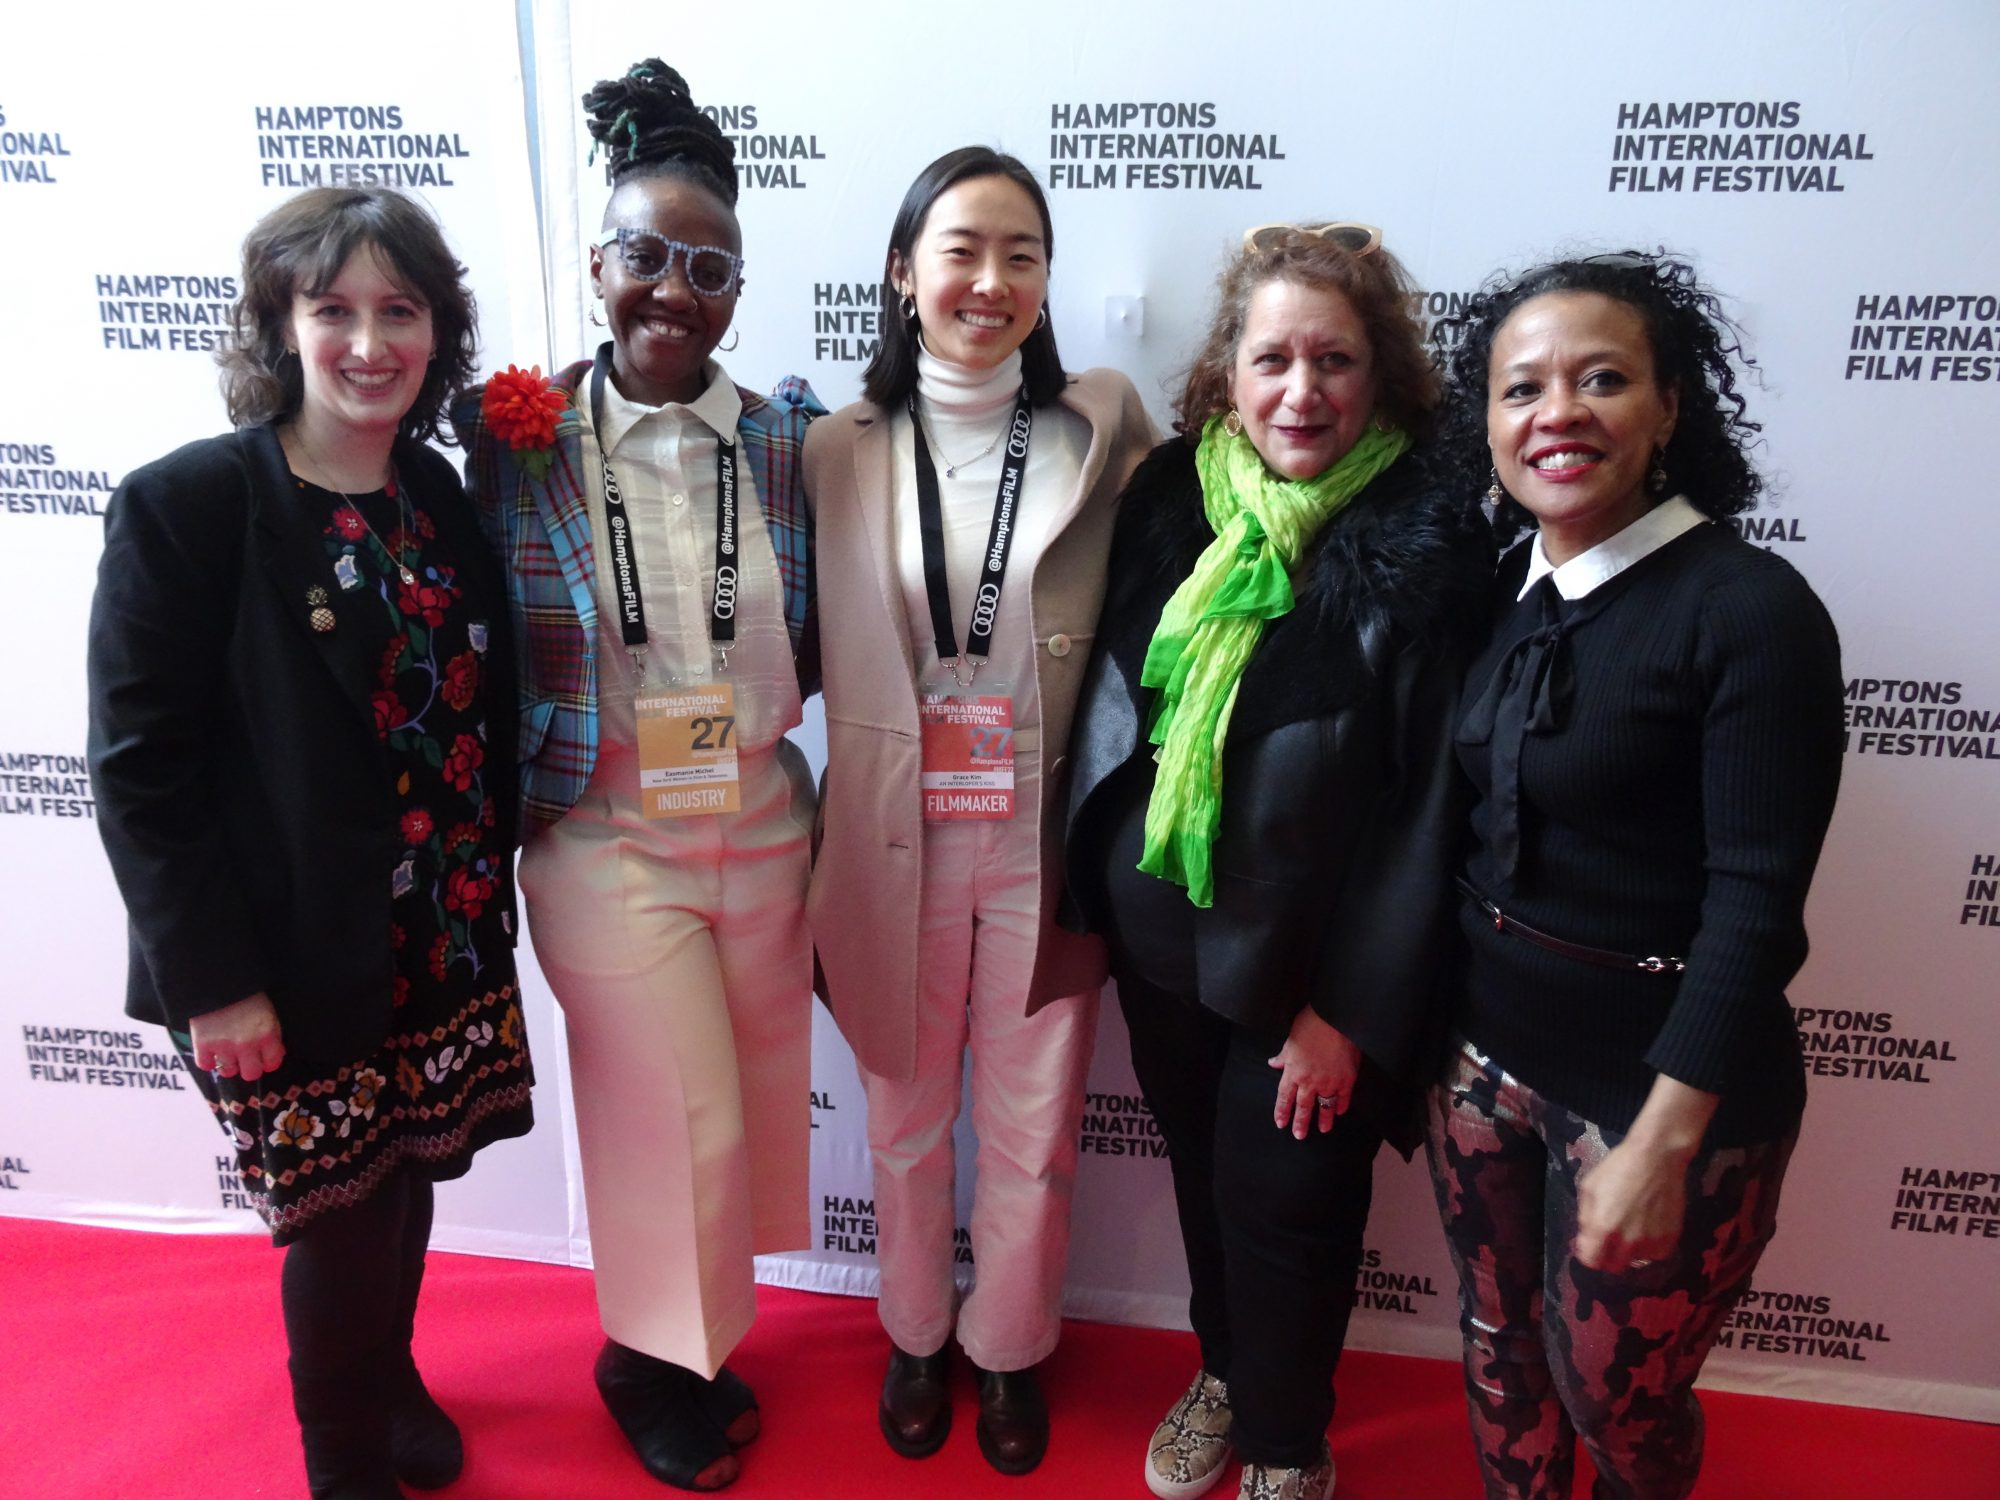 From left: Katie Chambers (NYWIFT Community Engagement Director), Easmanie Michel (NYWIFT Special Projects and Finance Associate), Grace Kim (Filmmaker) Cynthia Lopez (NYWIFT Executive Director) and Rachel Watanabe-Batton (NYWIFT Board Member/Producer), on the red carpet at the NYWIFT Women Calling the Shots Showcase at the 2019 Hamptons International Film Festival